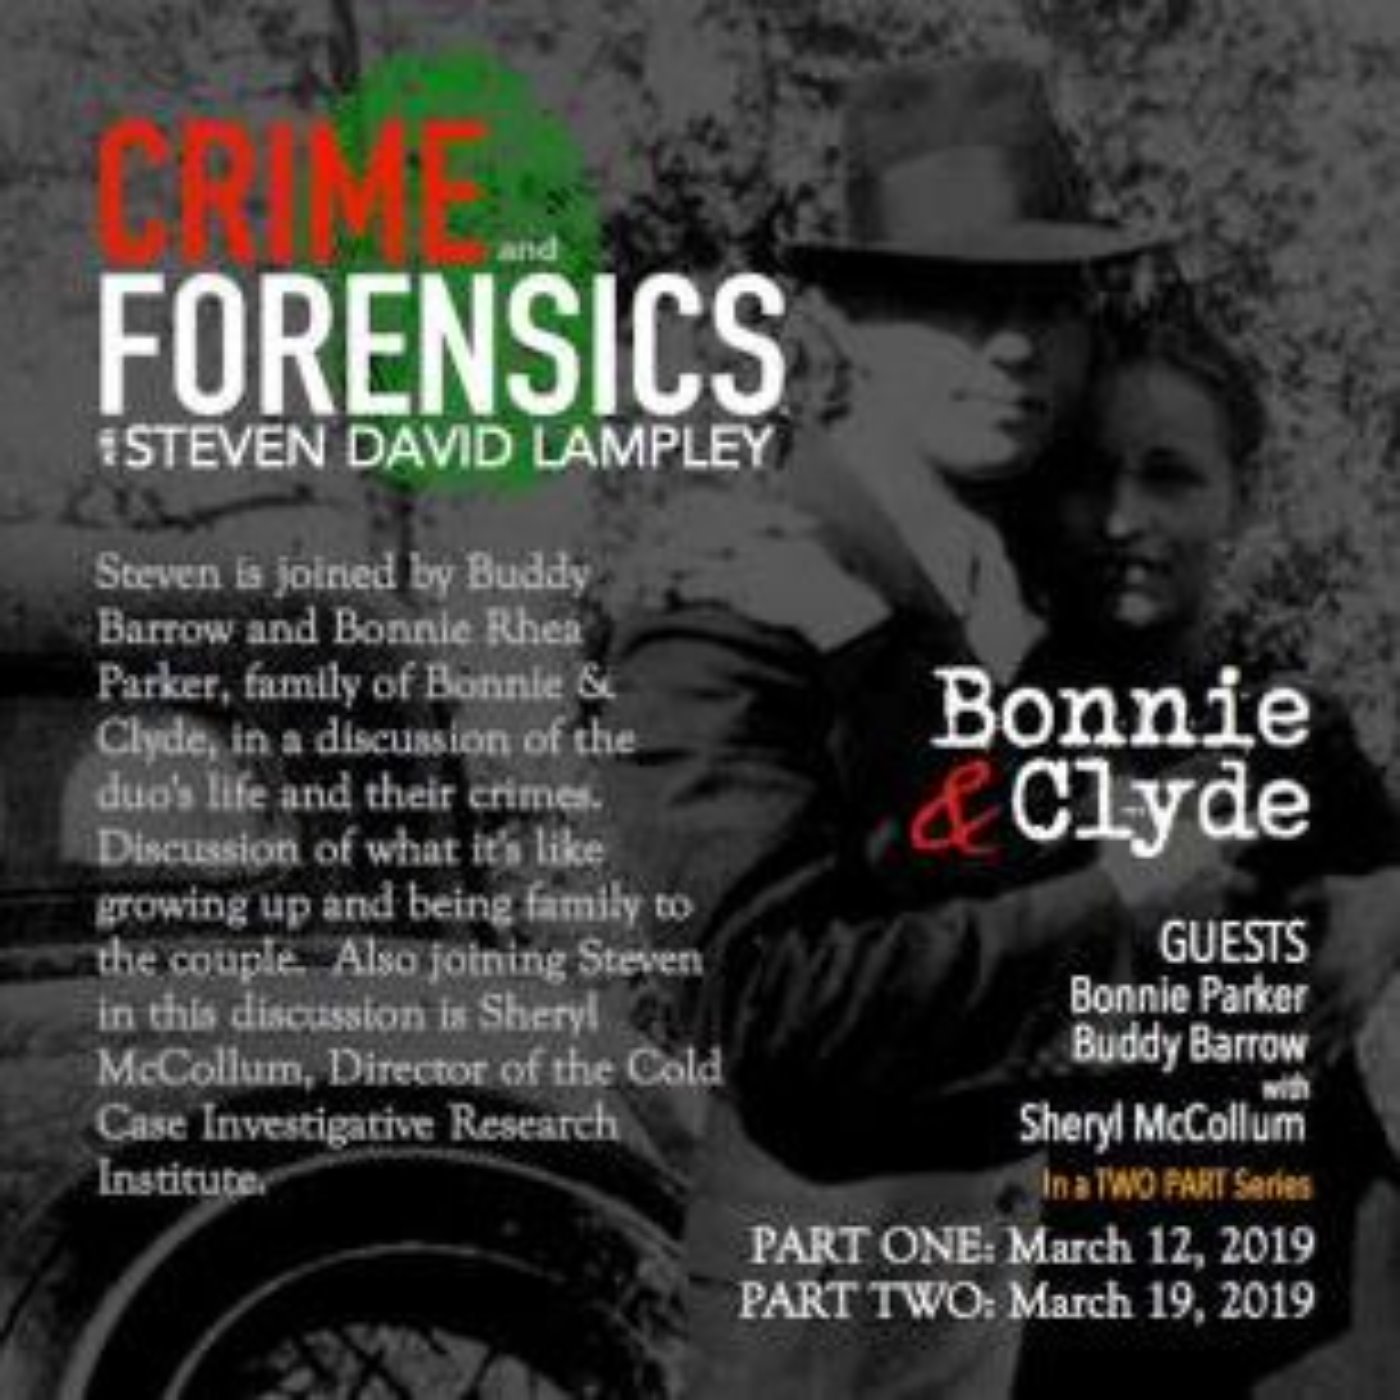 BONNIE & CLYDE (PART TWO) - Clyde Barrow's Nephew